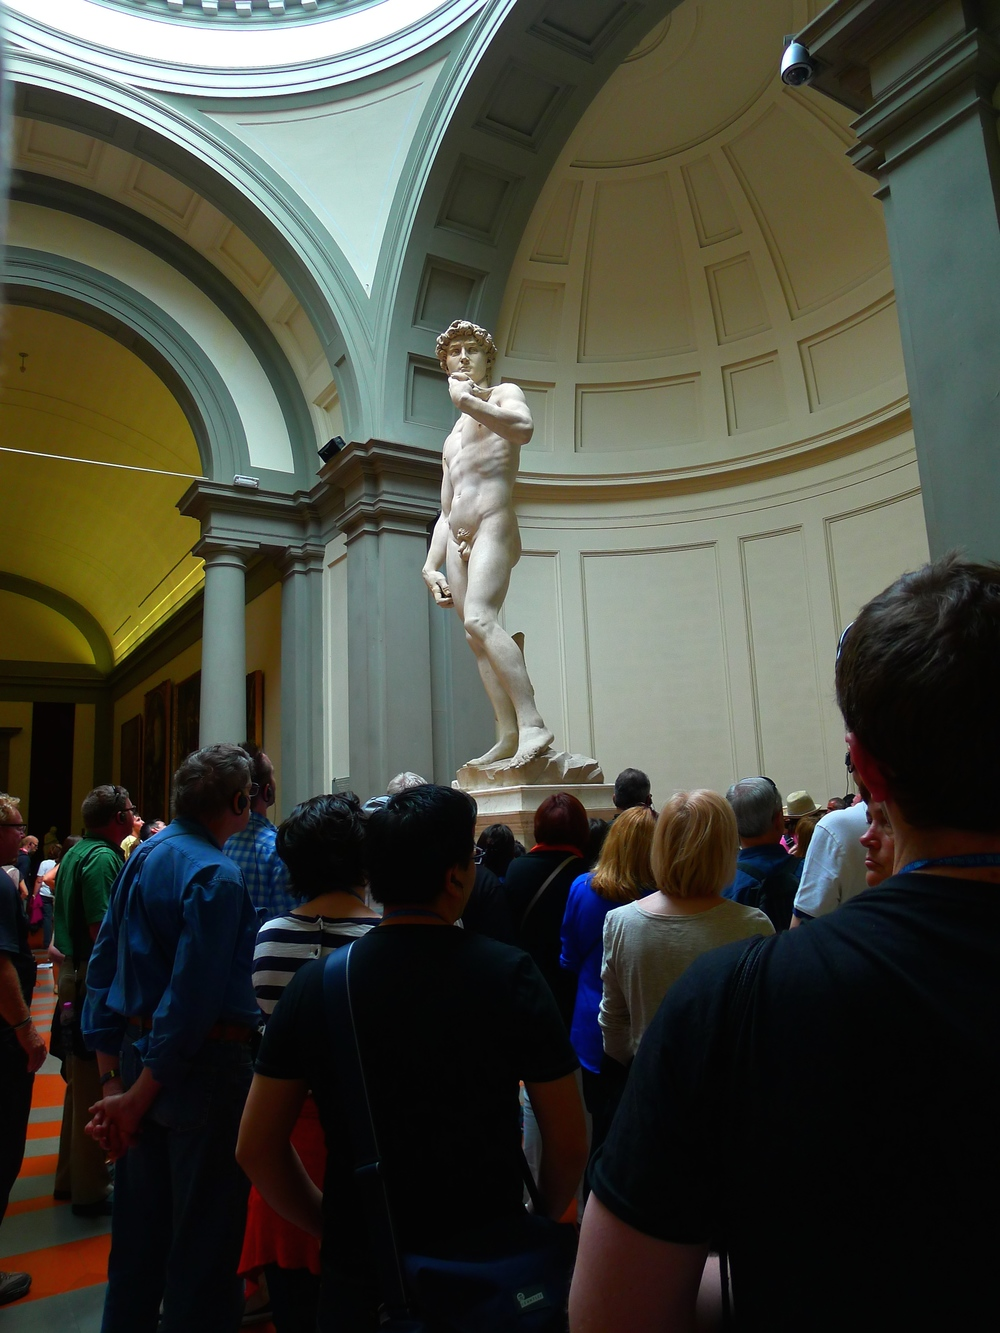 The David inside of the Accademia in Florence, Italy.